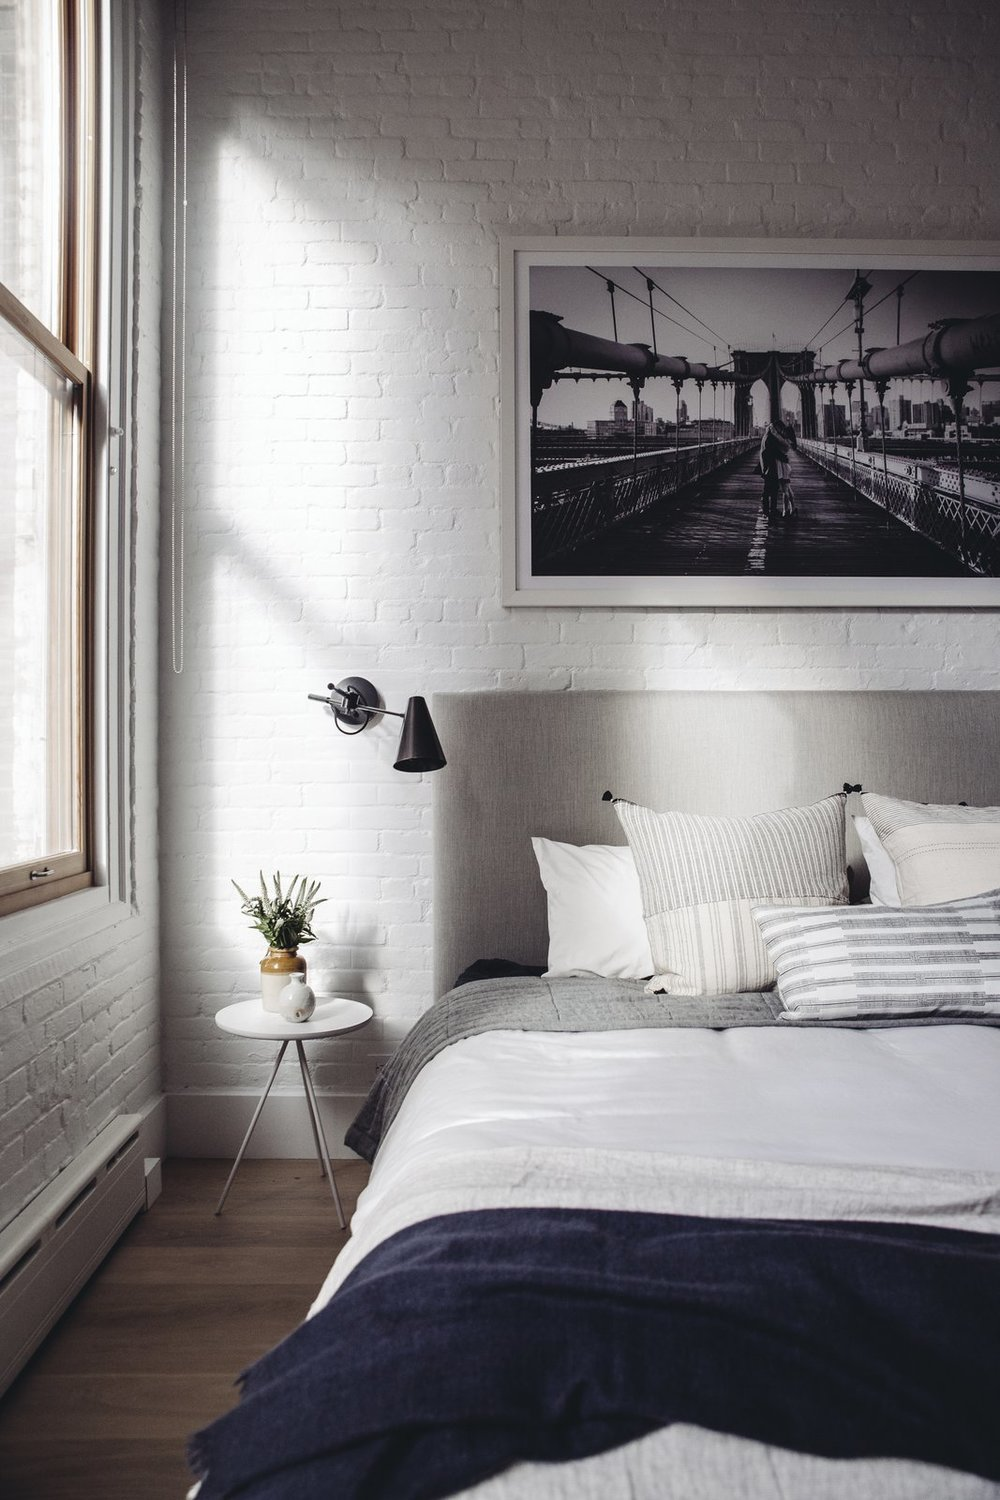 Exposed brick and natural light add a touch of quintessential New York loft style to the updated home. Restoration Hardware sconces, pillows from Injiri and Susan Connor, and a throw from ABC home tie the room together in the perfect combination of structured and cozy. (Chloe Leroux)